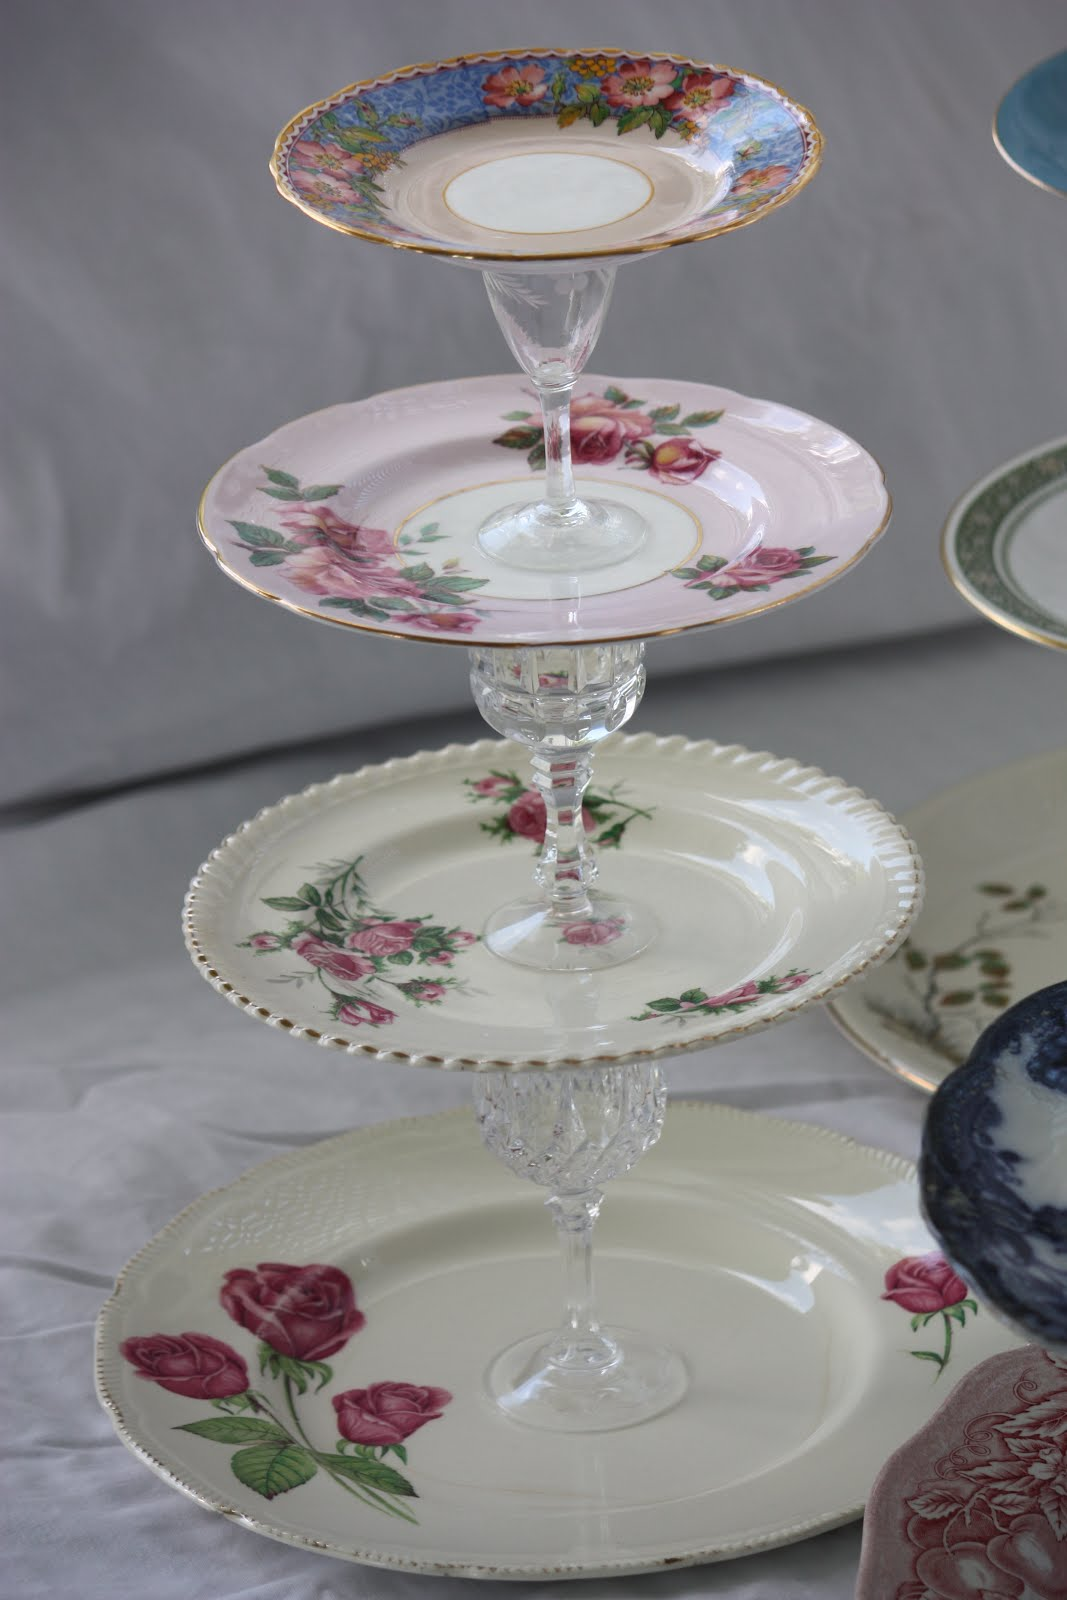 Project 6 Vintage Tiered Cake Stands & Crafty Friday: Project 6: Vintage Tiered Cake Stands